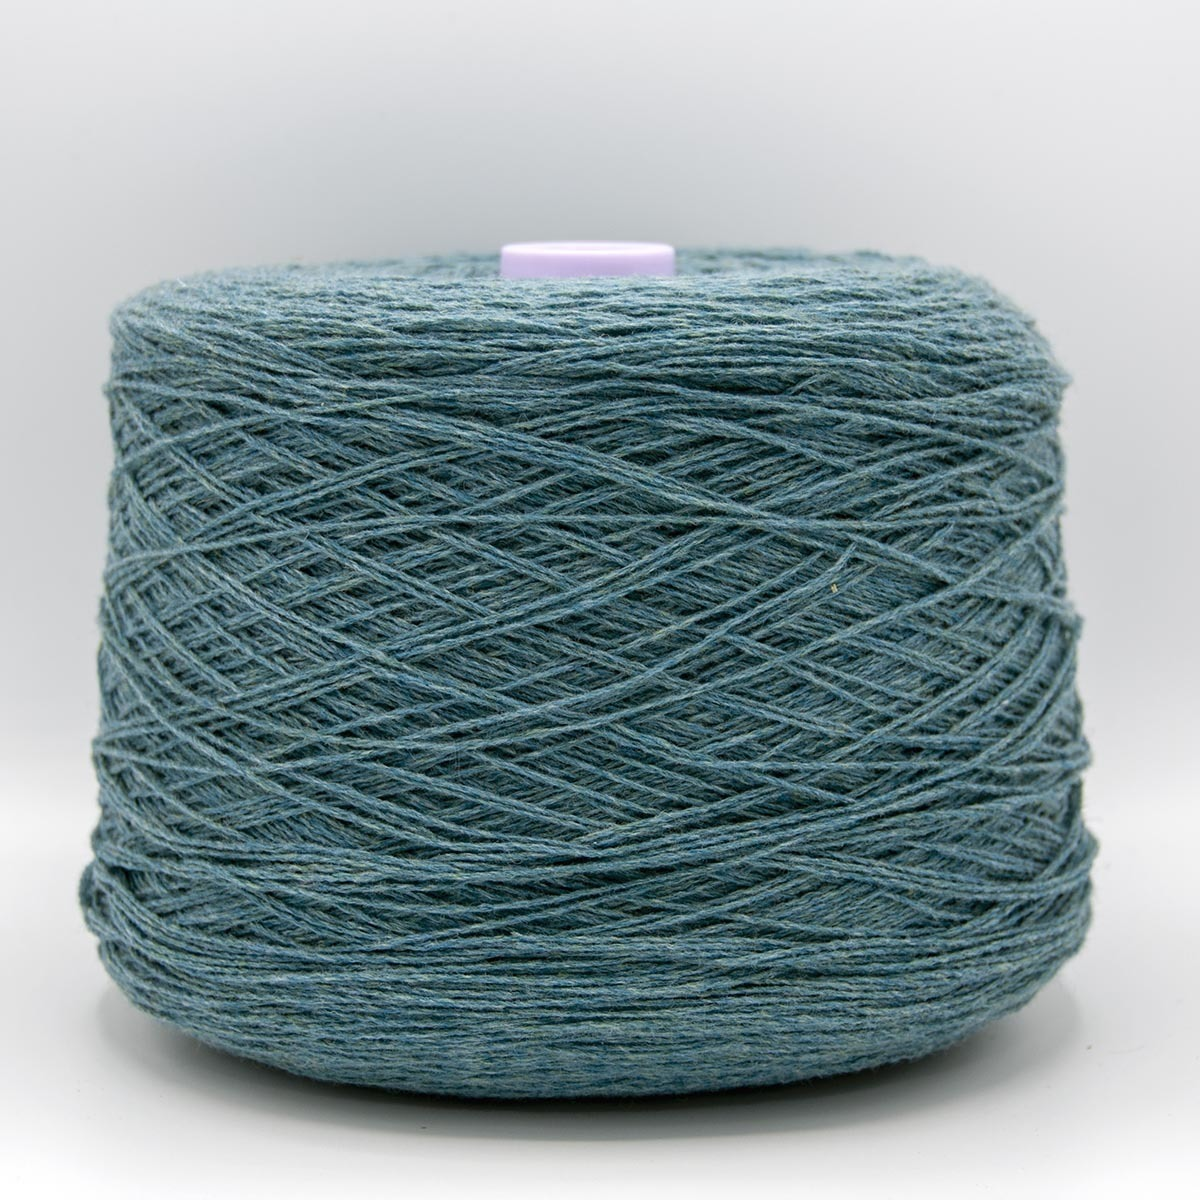 Knoll Yarns Lambswool - 171